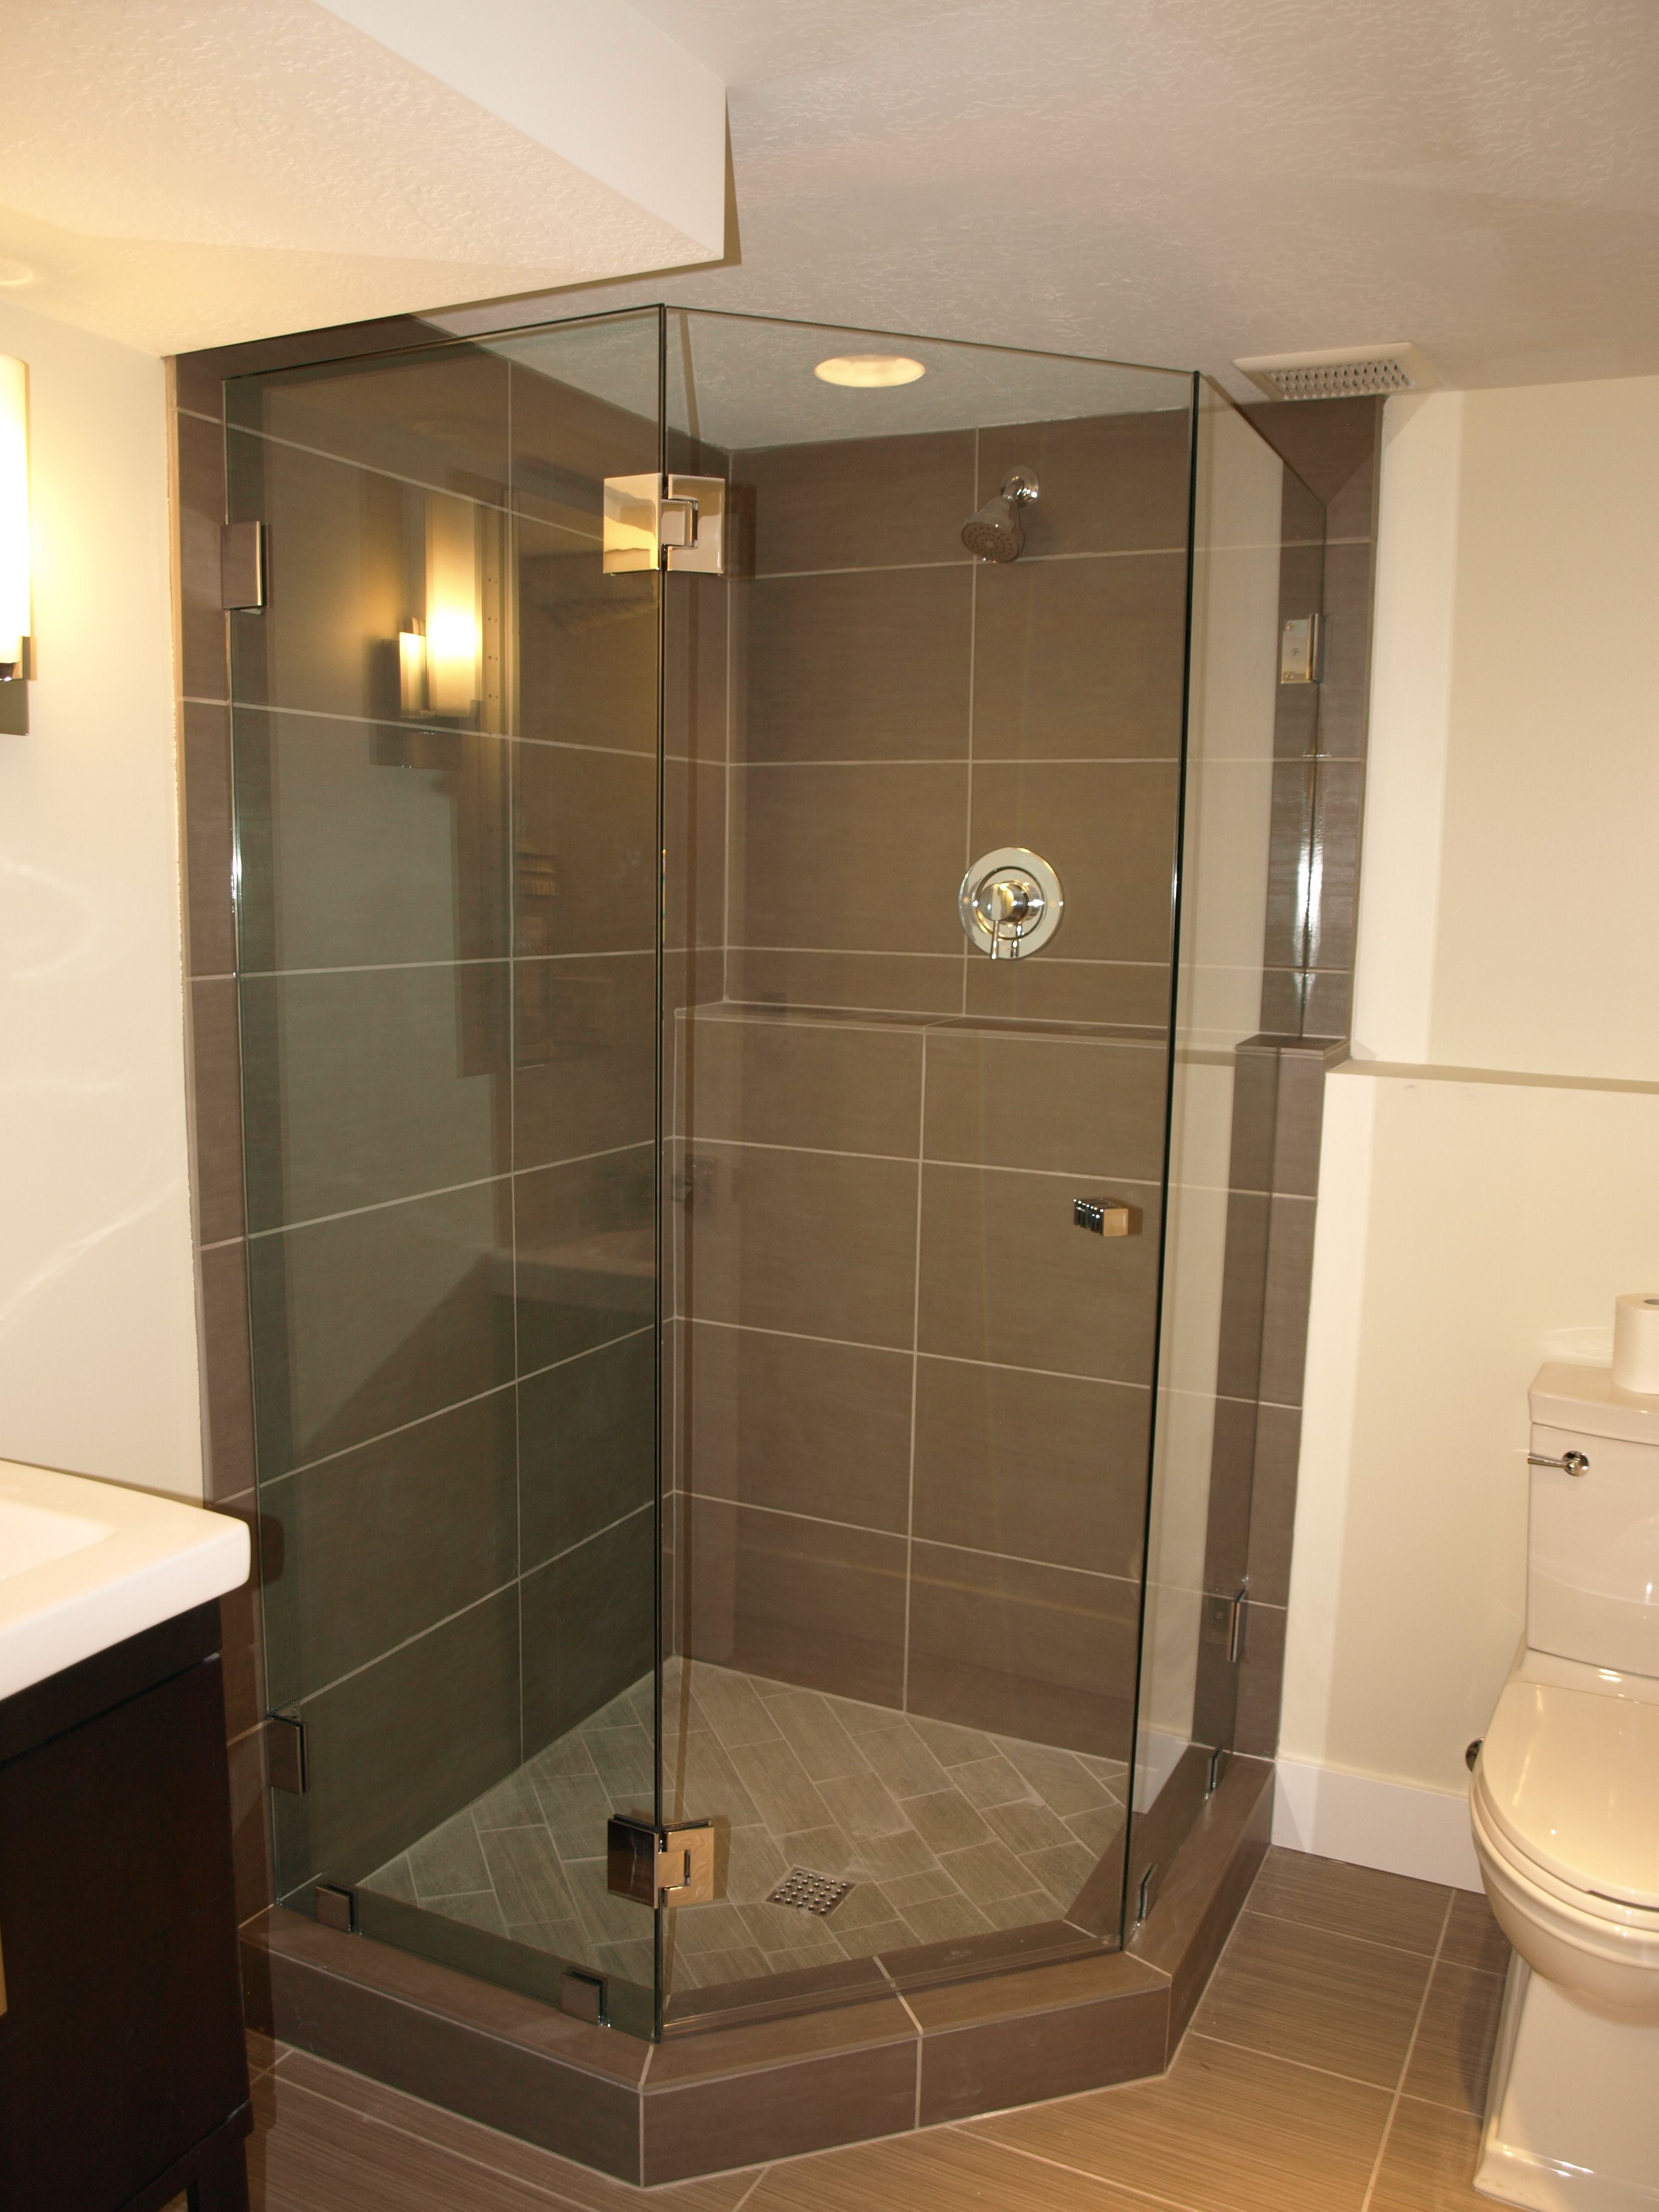 New angle european showers. (UT company?) | Studio Ideas | Pinterest ...